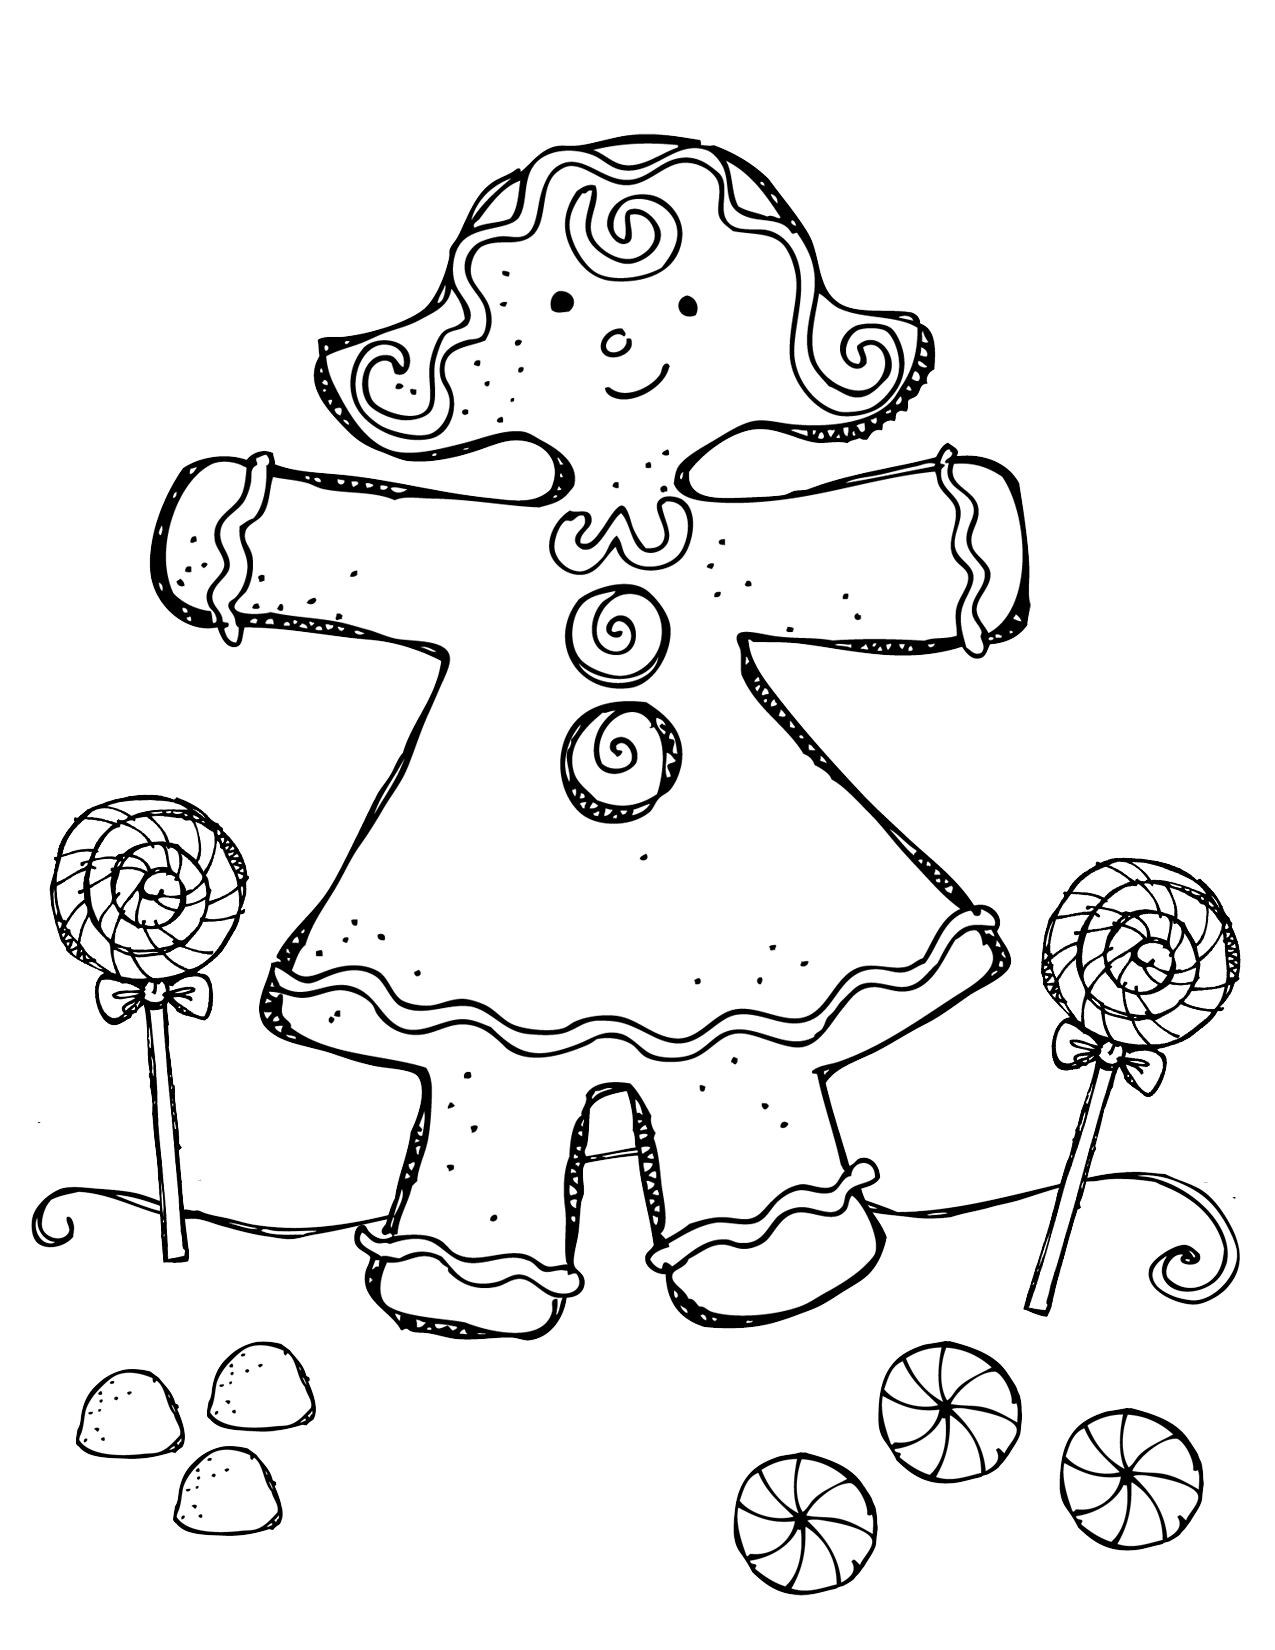 Gingerbread Boy And Girl Coloring Pages Az Coloring Pages Gingerbread Boy Coloring Page